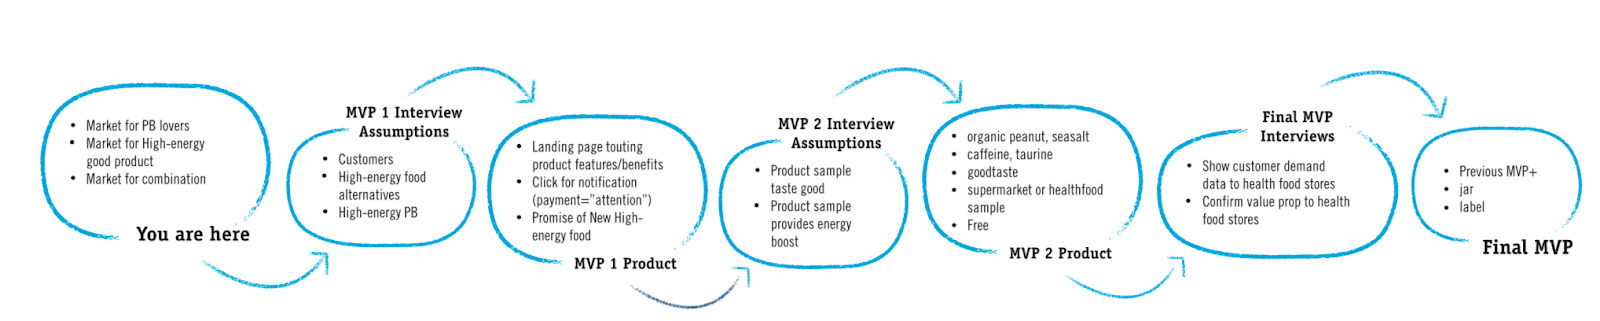 building MVP step by step